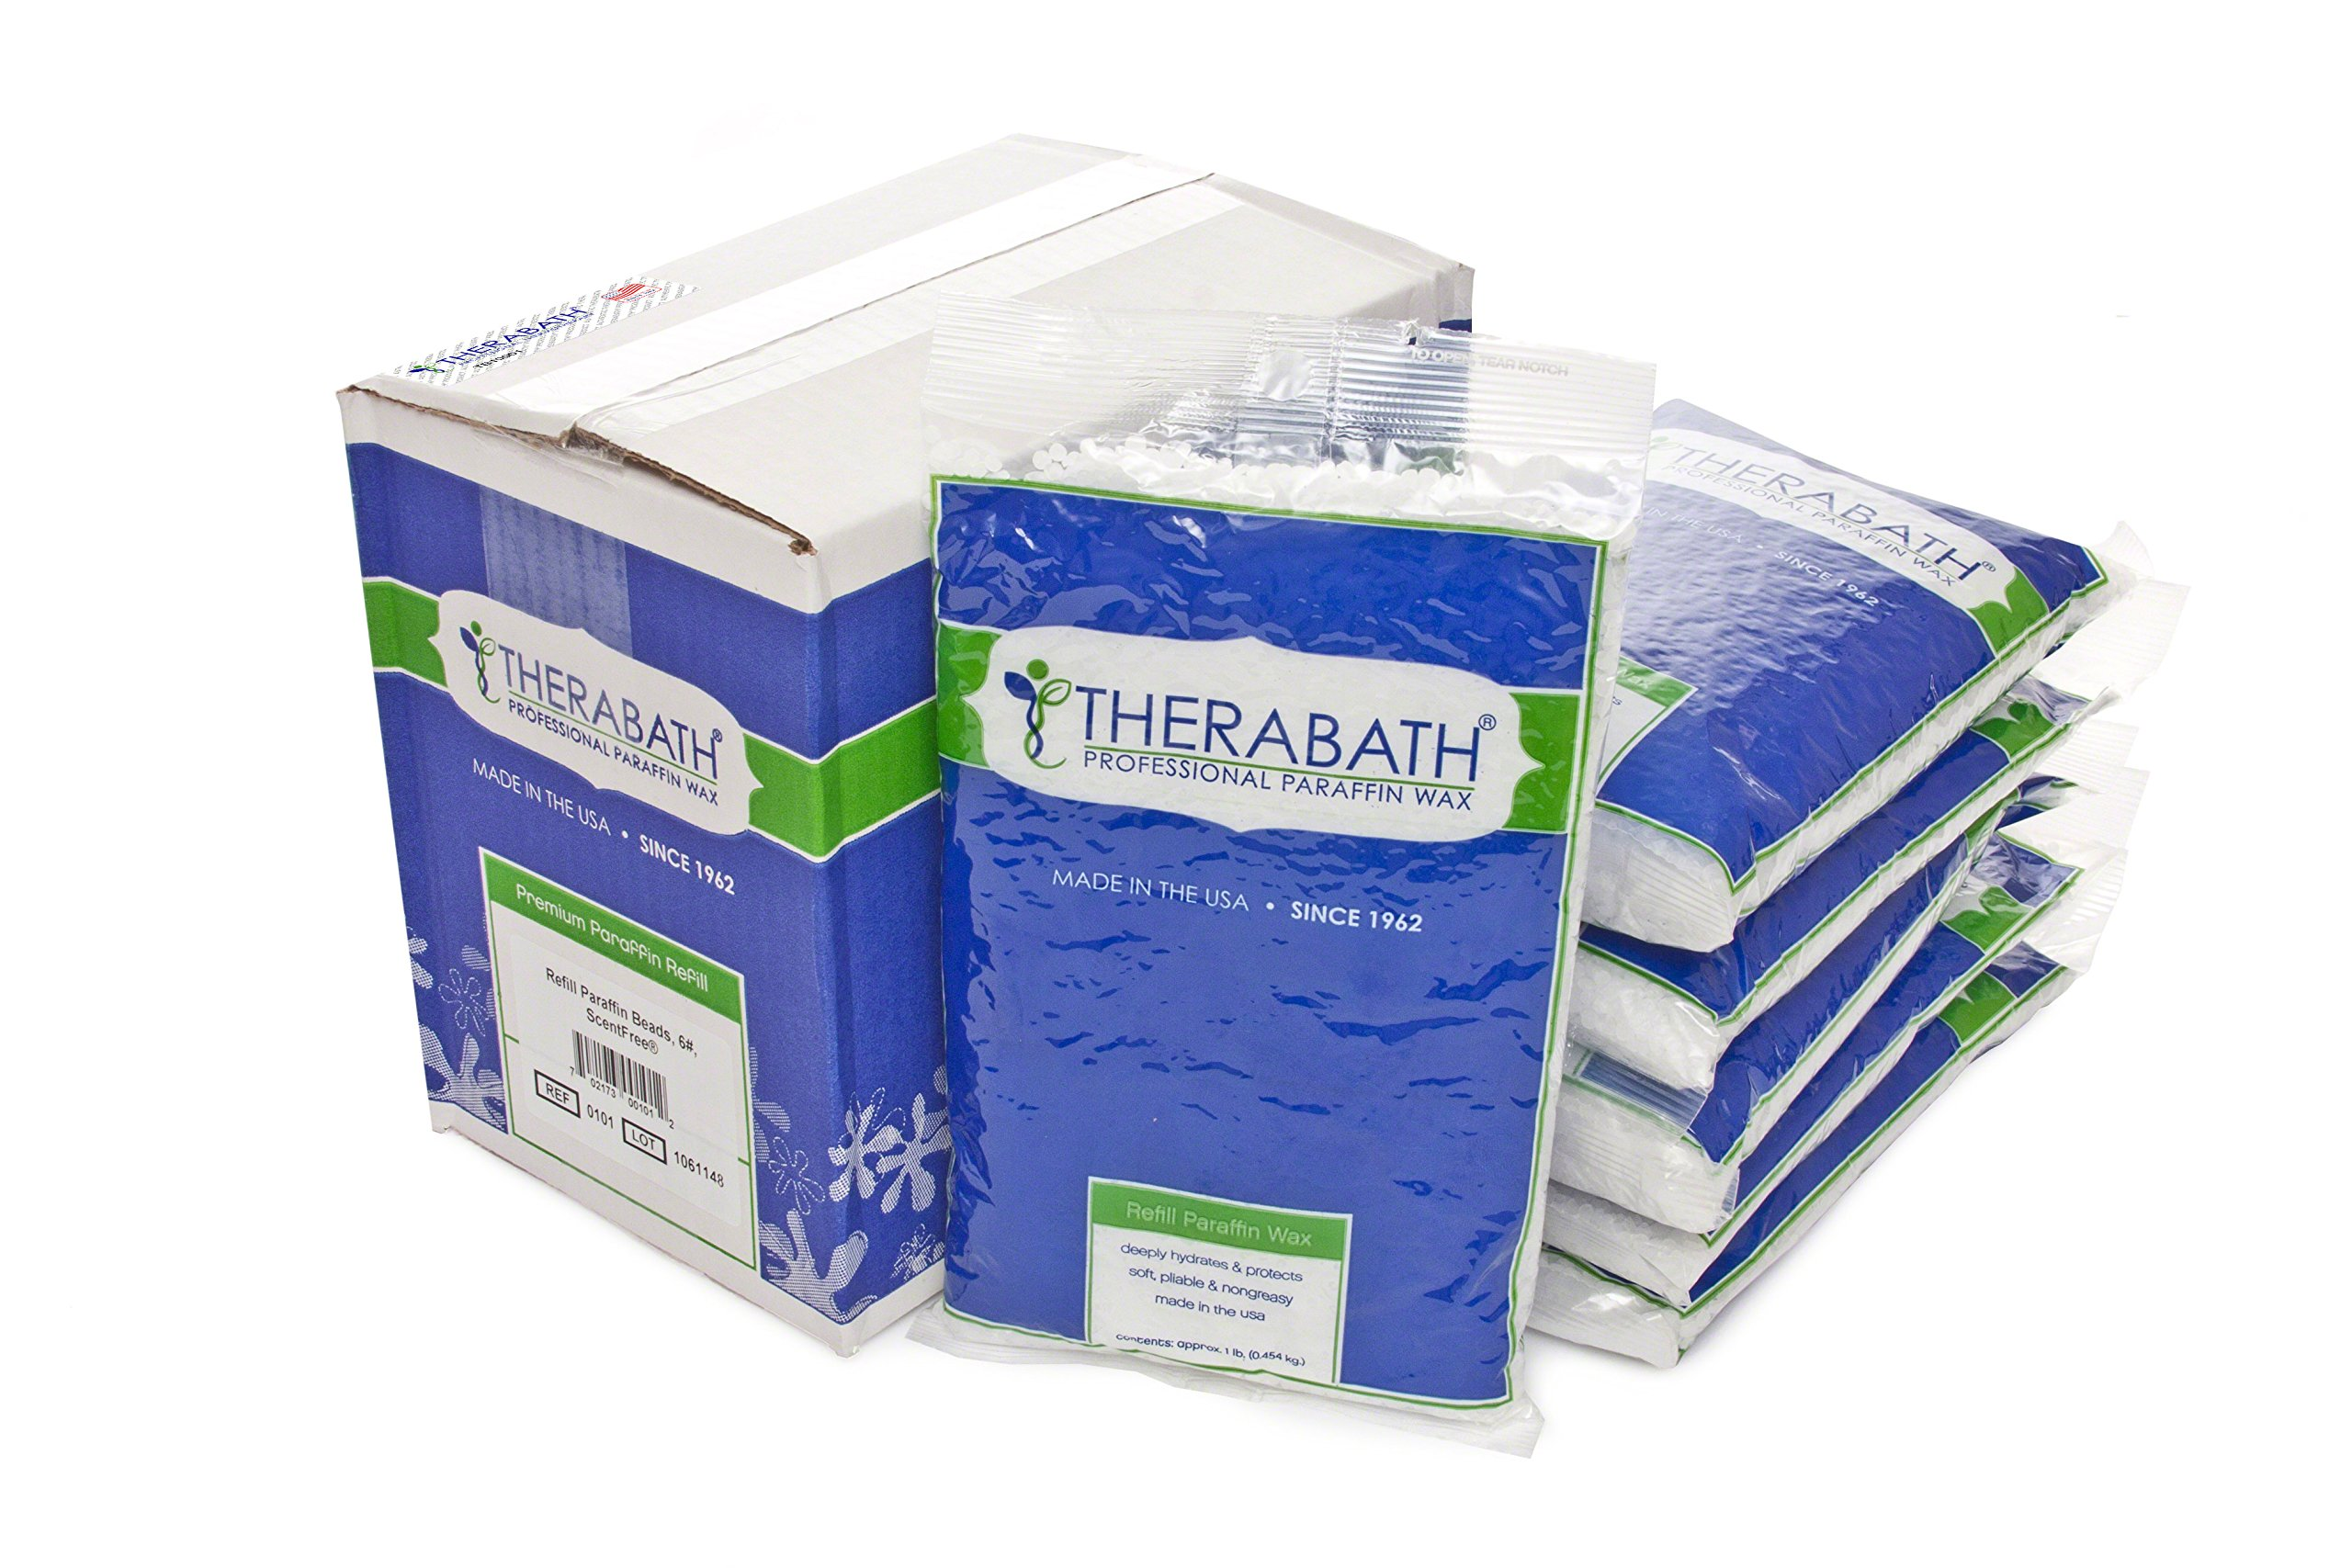 Therabath Paraffin Wax Refill - Use To Relieve Arthitis Pain and Stiff Muscles - Deeply Hydrates and Protects - 6 lbs (ScentFree) by Therabath (Image #2)